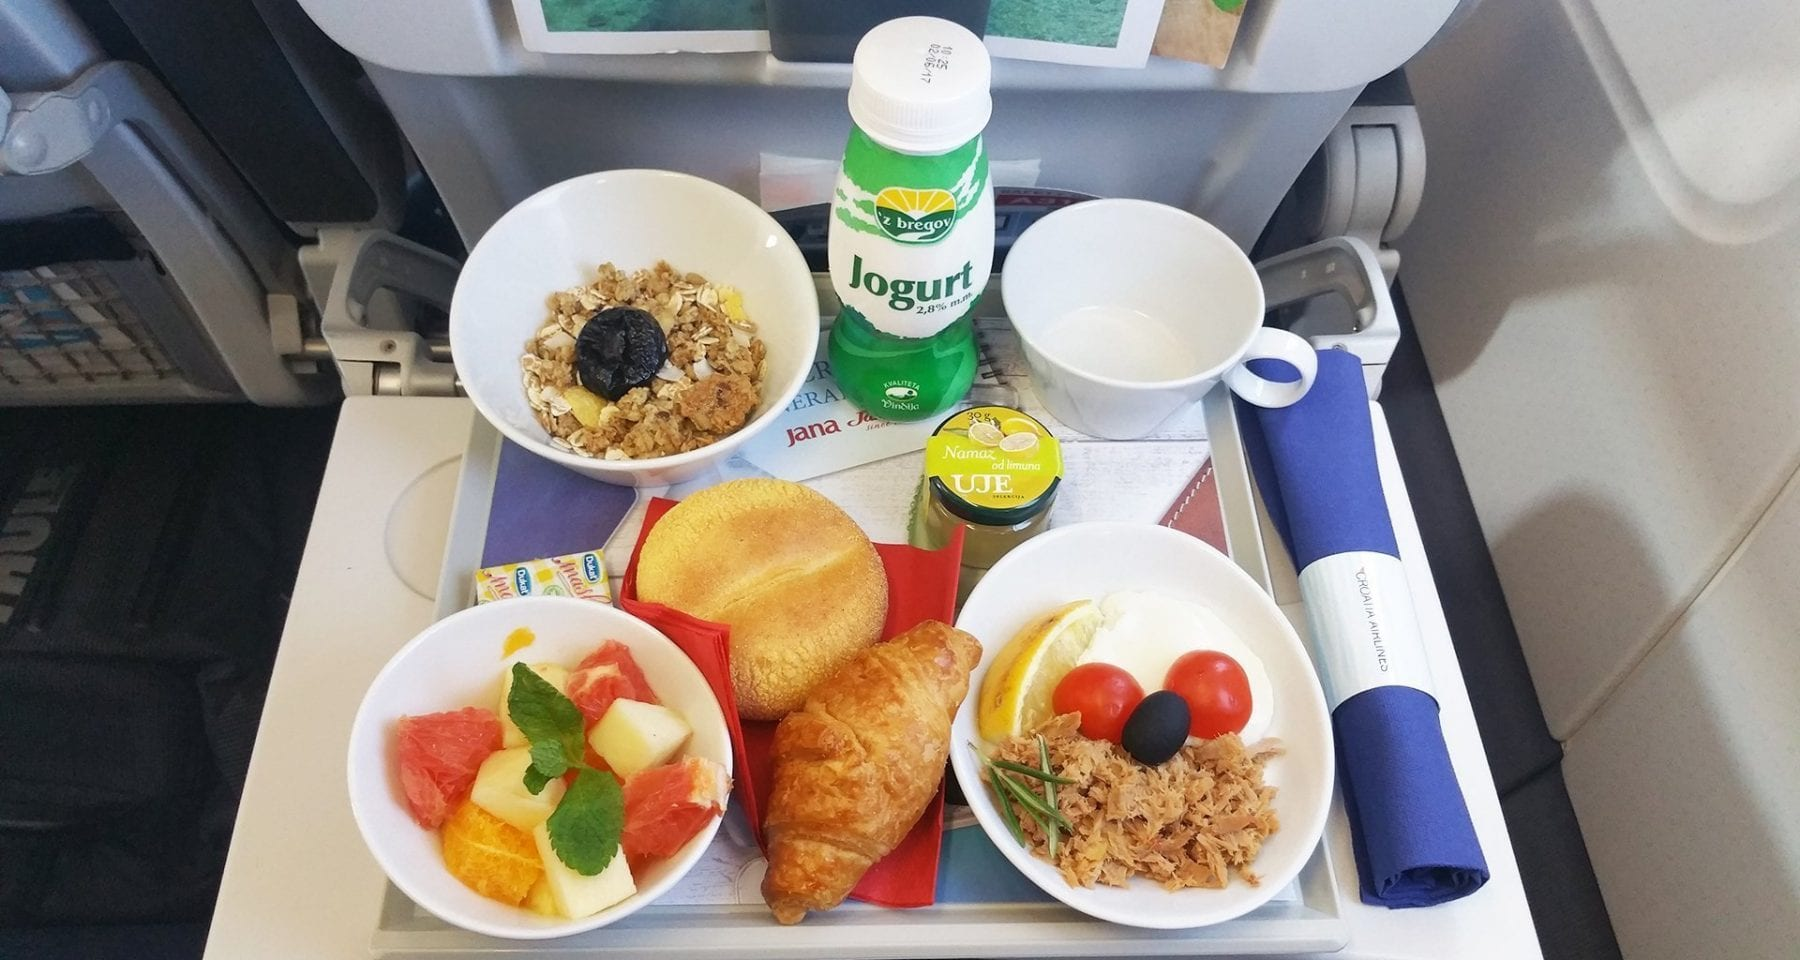 croatia airlines business class meal